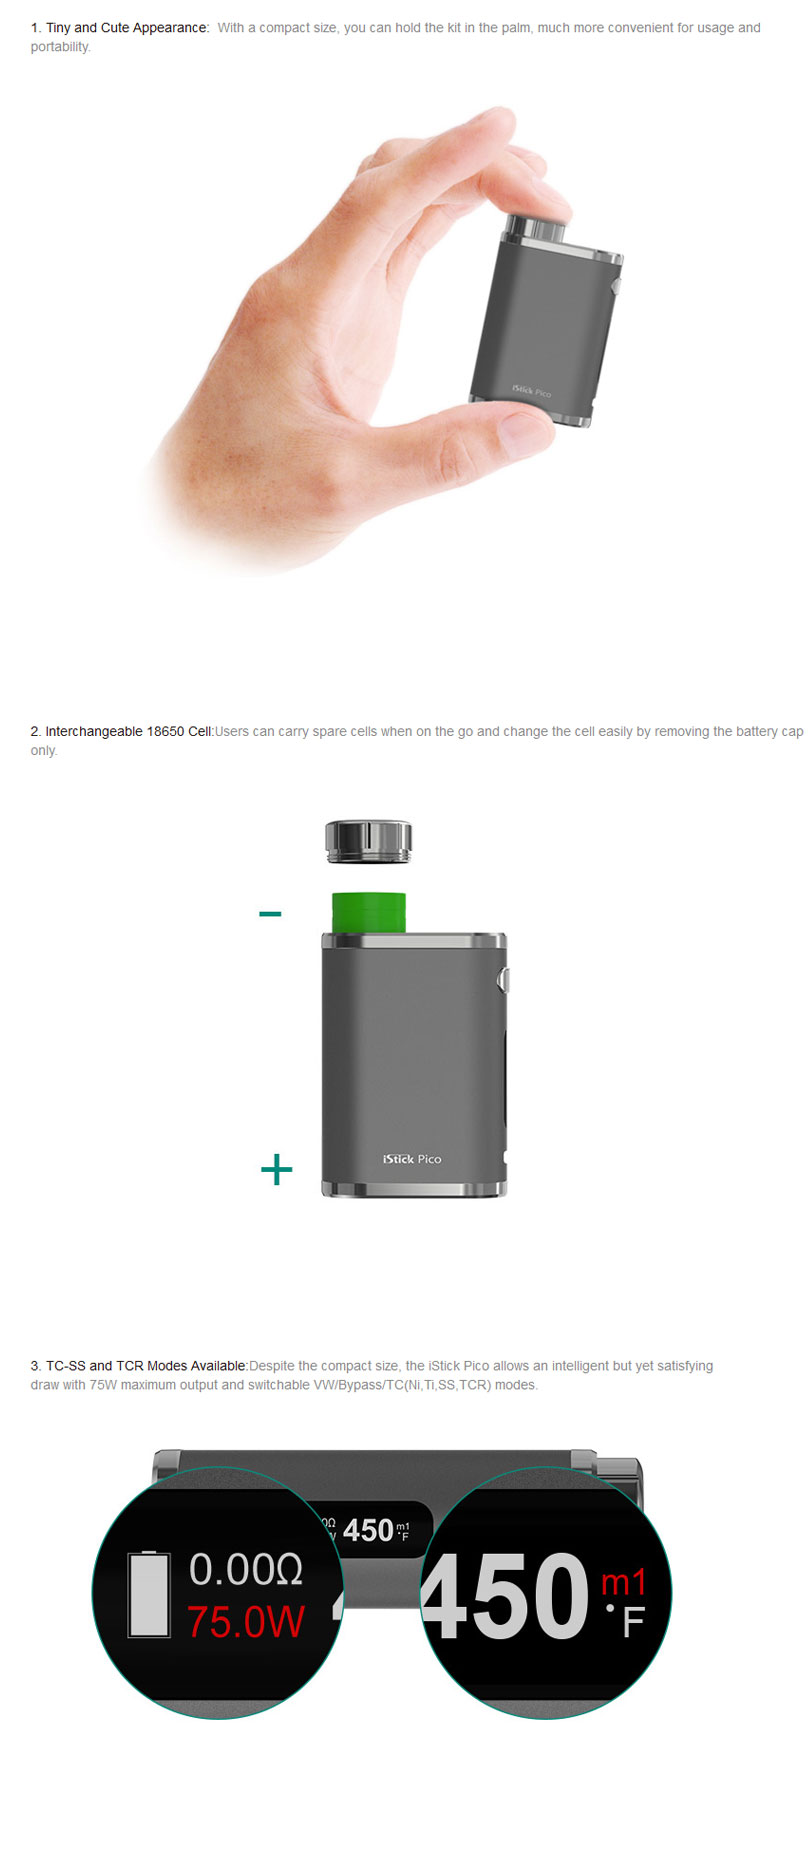 Eleaf iStick Pico Features